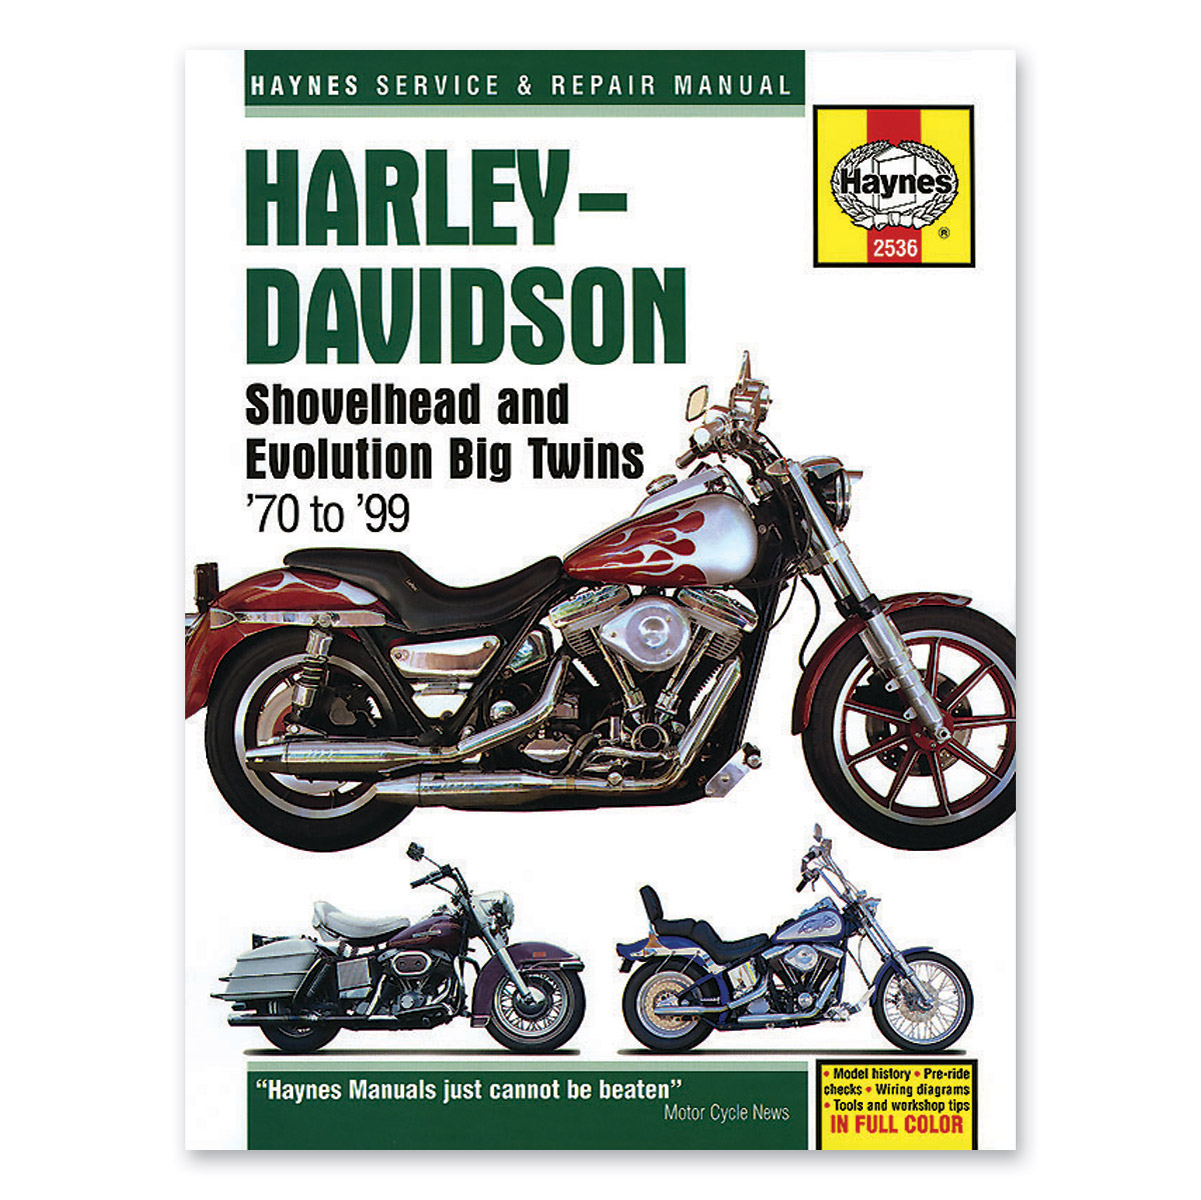 Haynes Shovelhead and Evolution Big Twins Manual